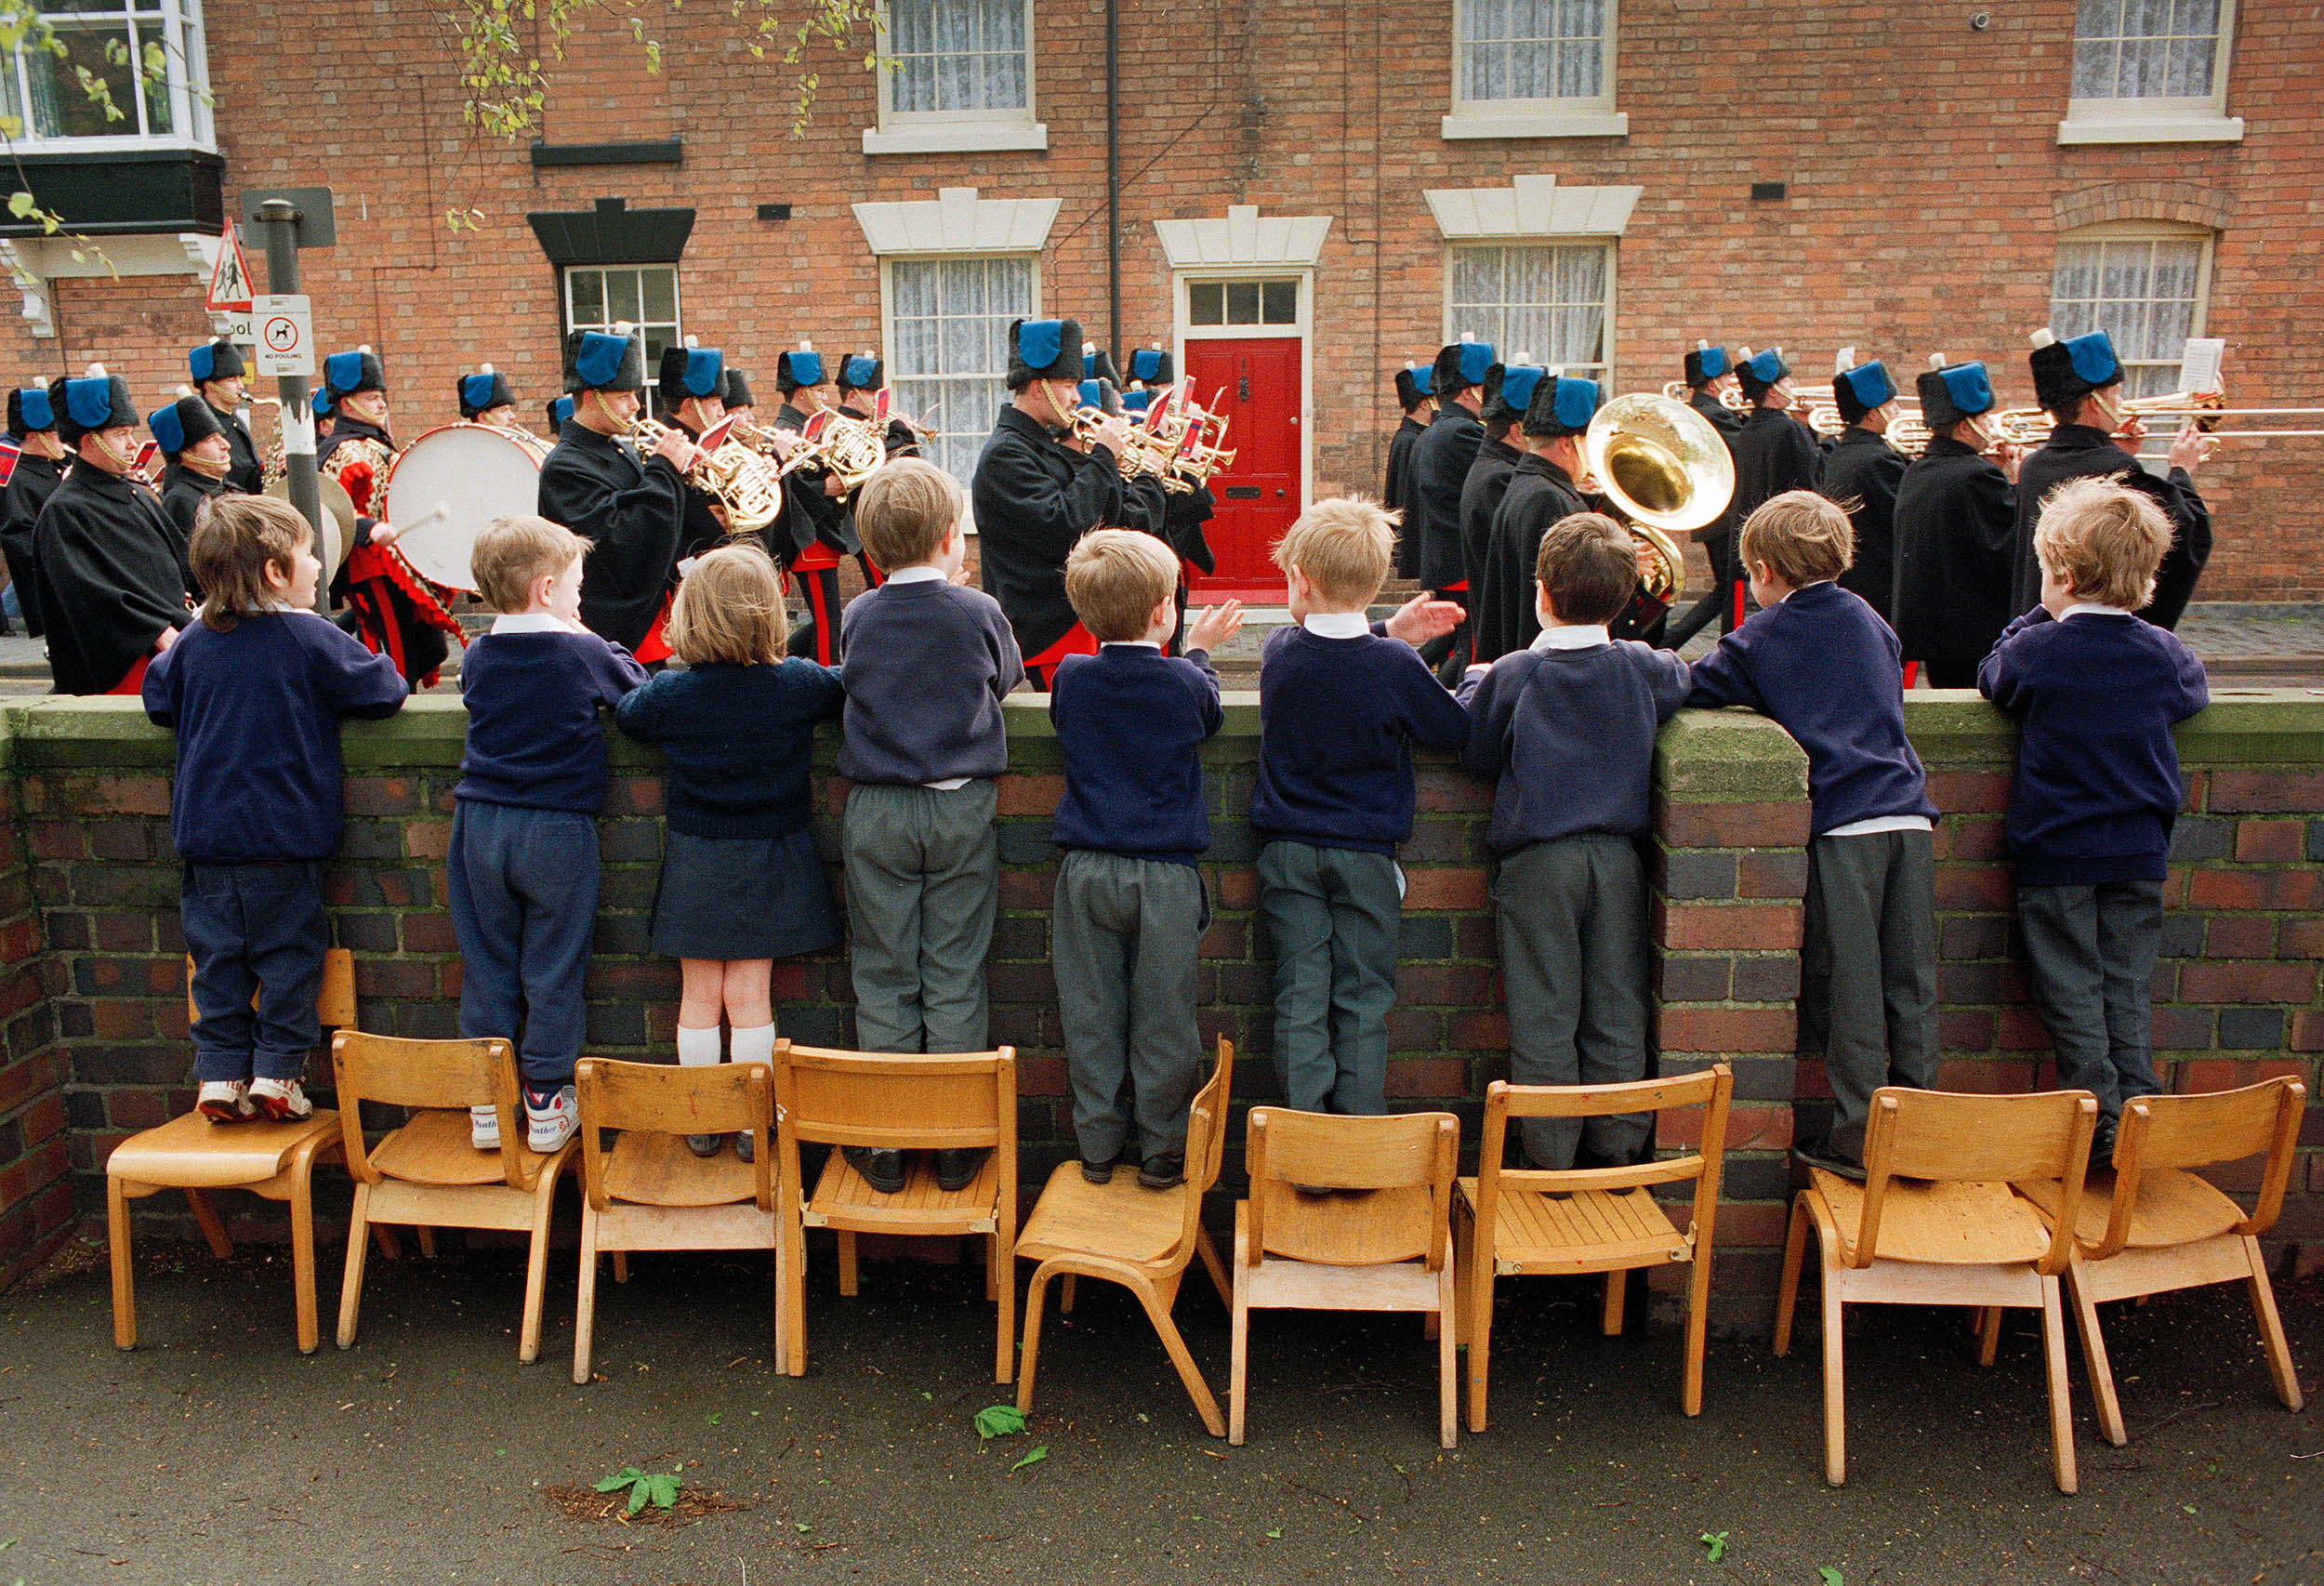 School children watch a marching brass band celebrating the anniversary of Shakespeare's birthday in Stratford-upon-Avon